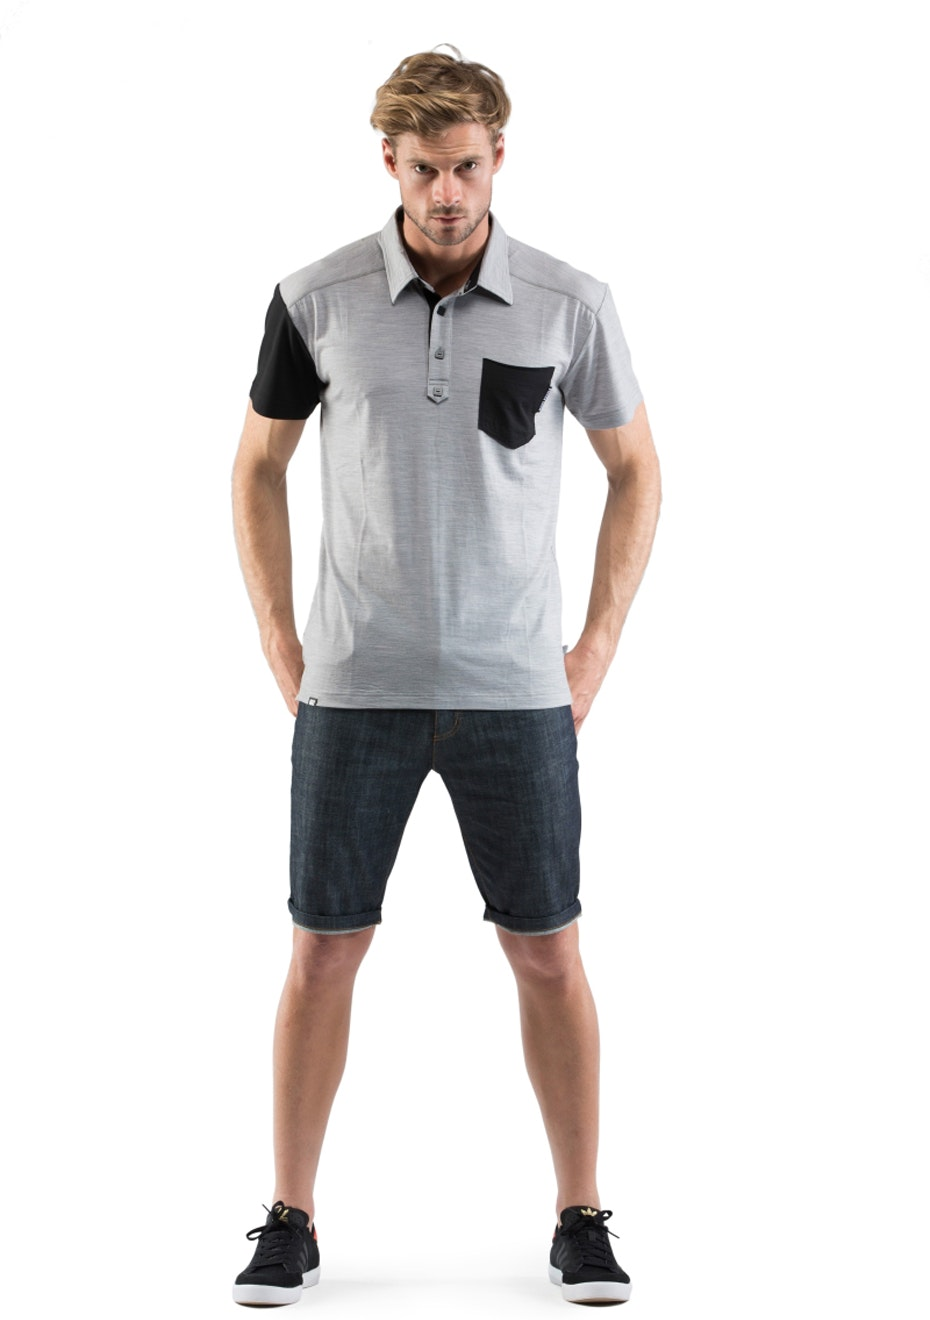 MONS ROYALE - Mens - Not Your Dads Polo - Grey Marl / Black